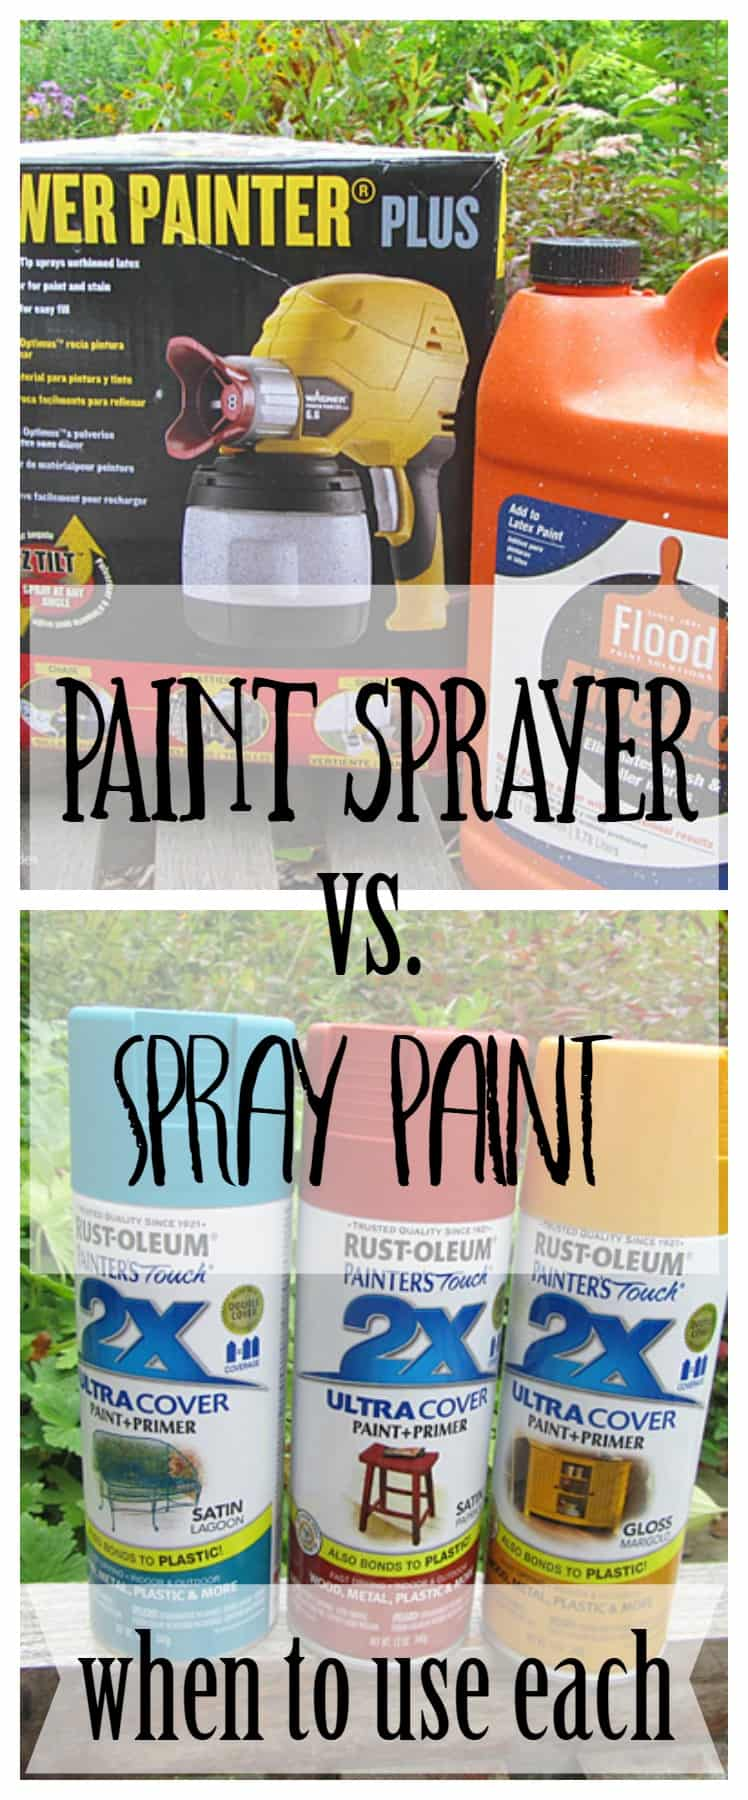 Paint sprayer vs. Spray paint